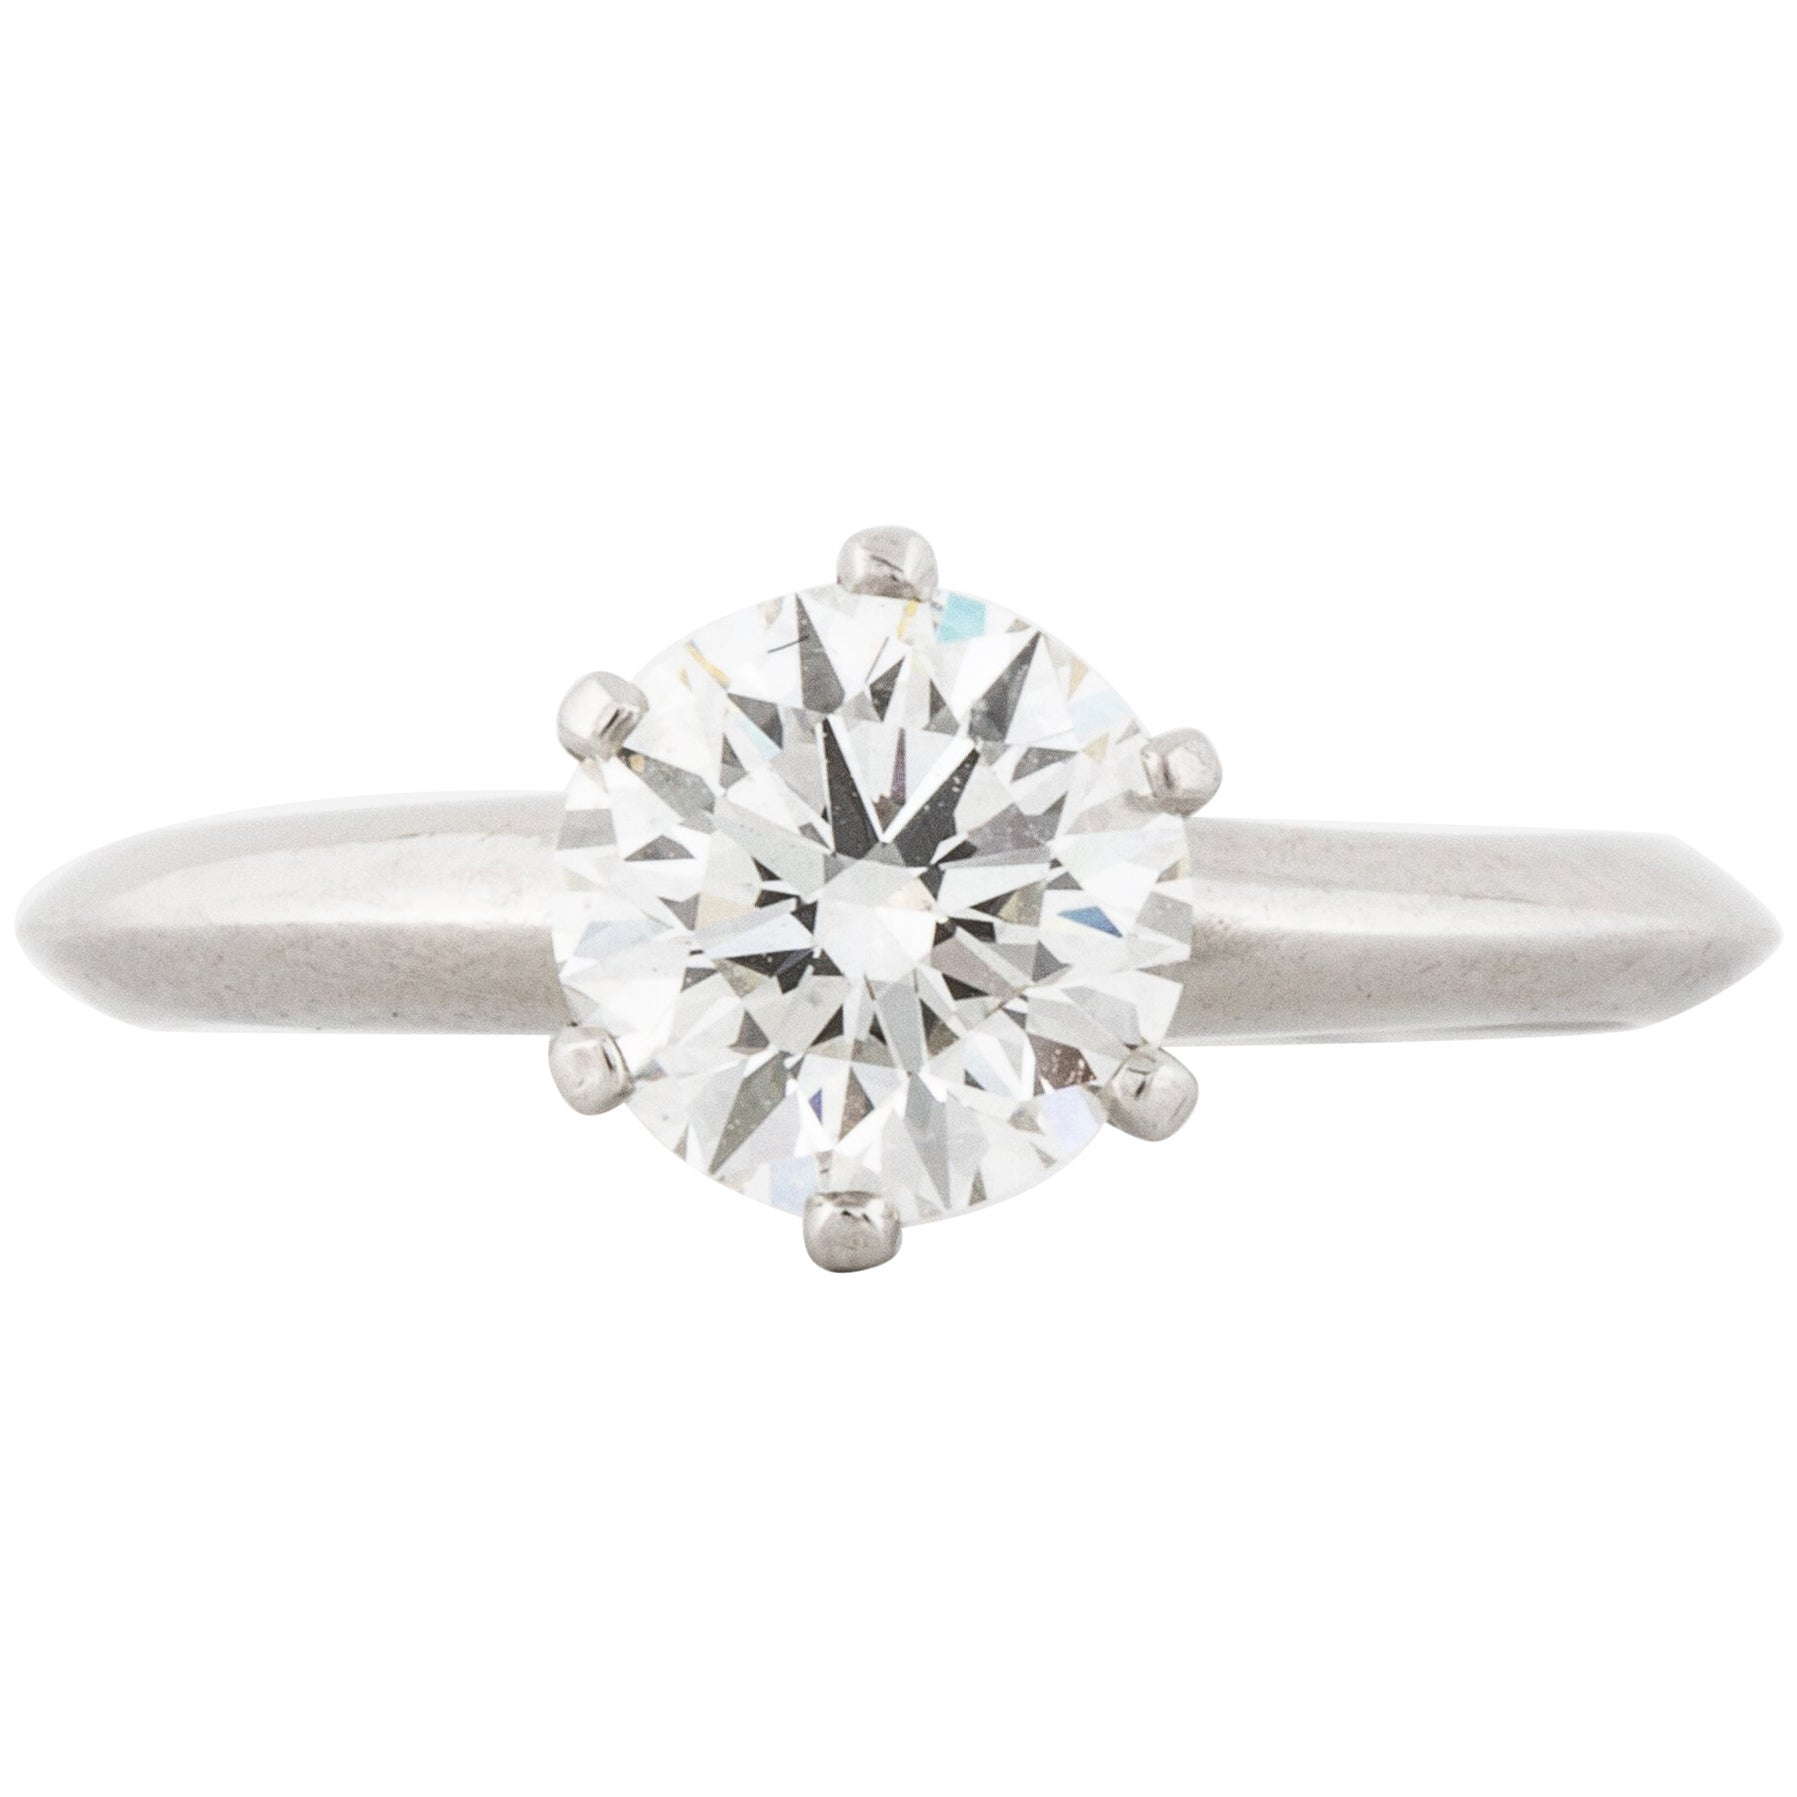 Tiffany & Co. 1.13 Carat Diamond Solitaire Ring